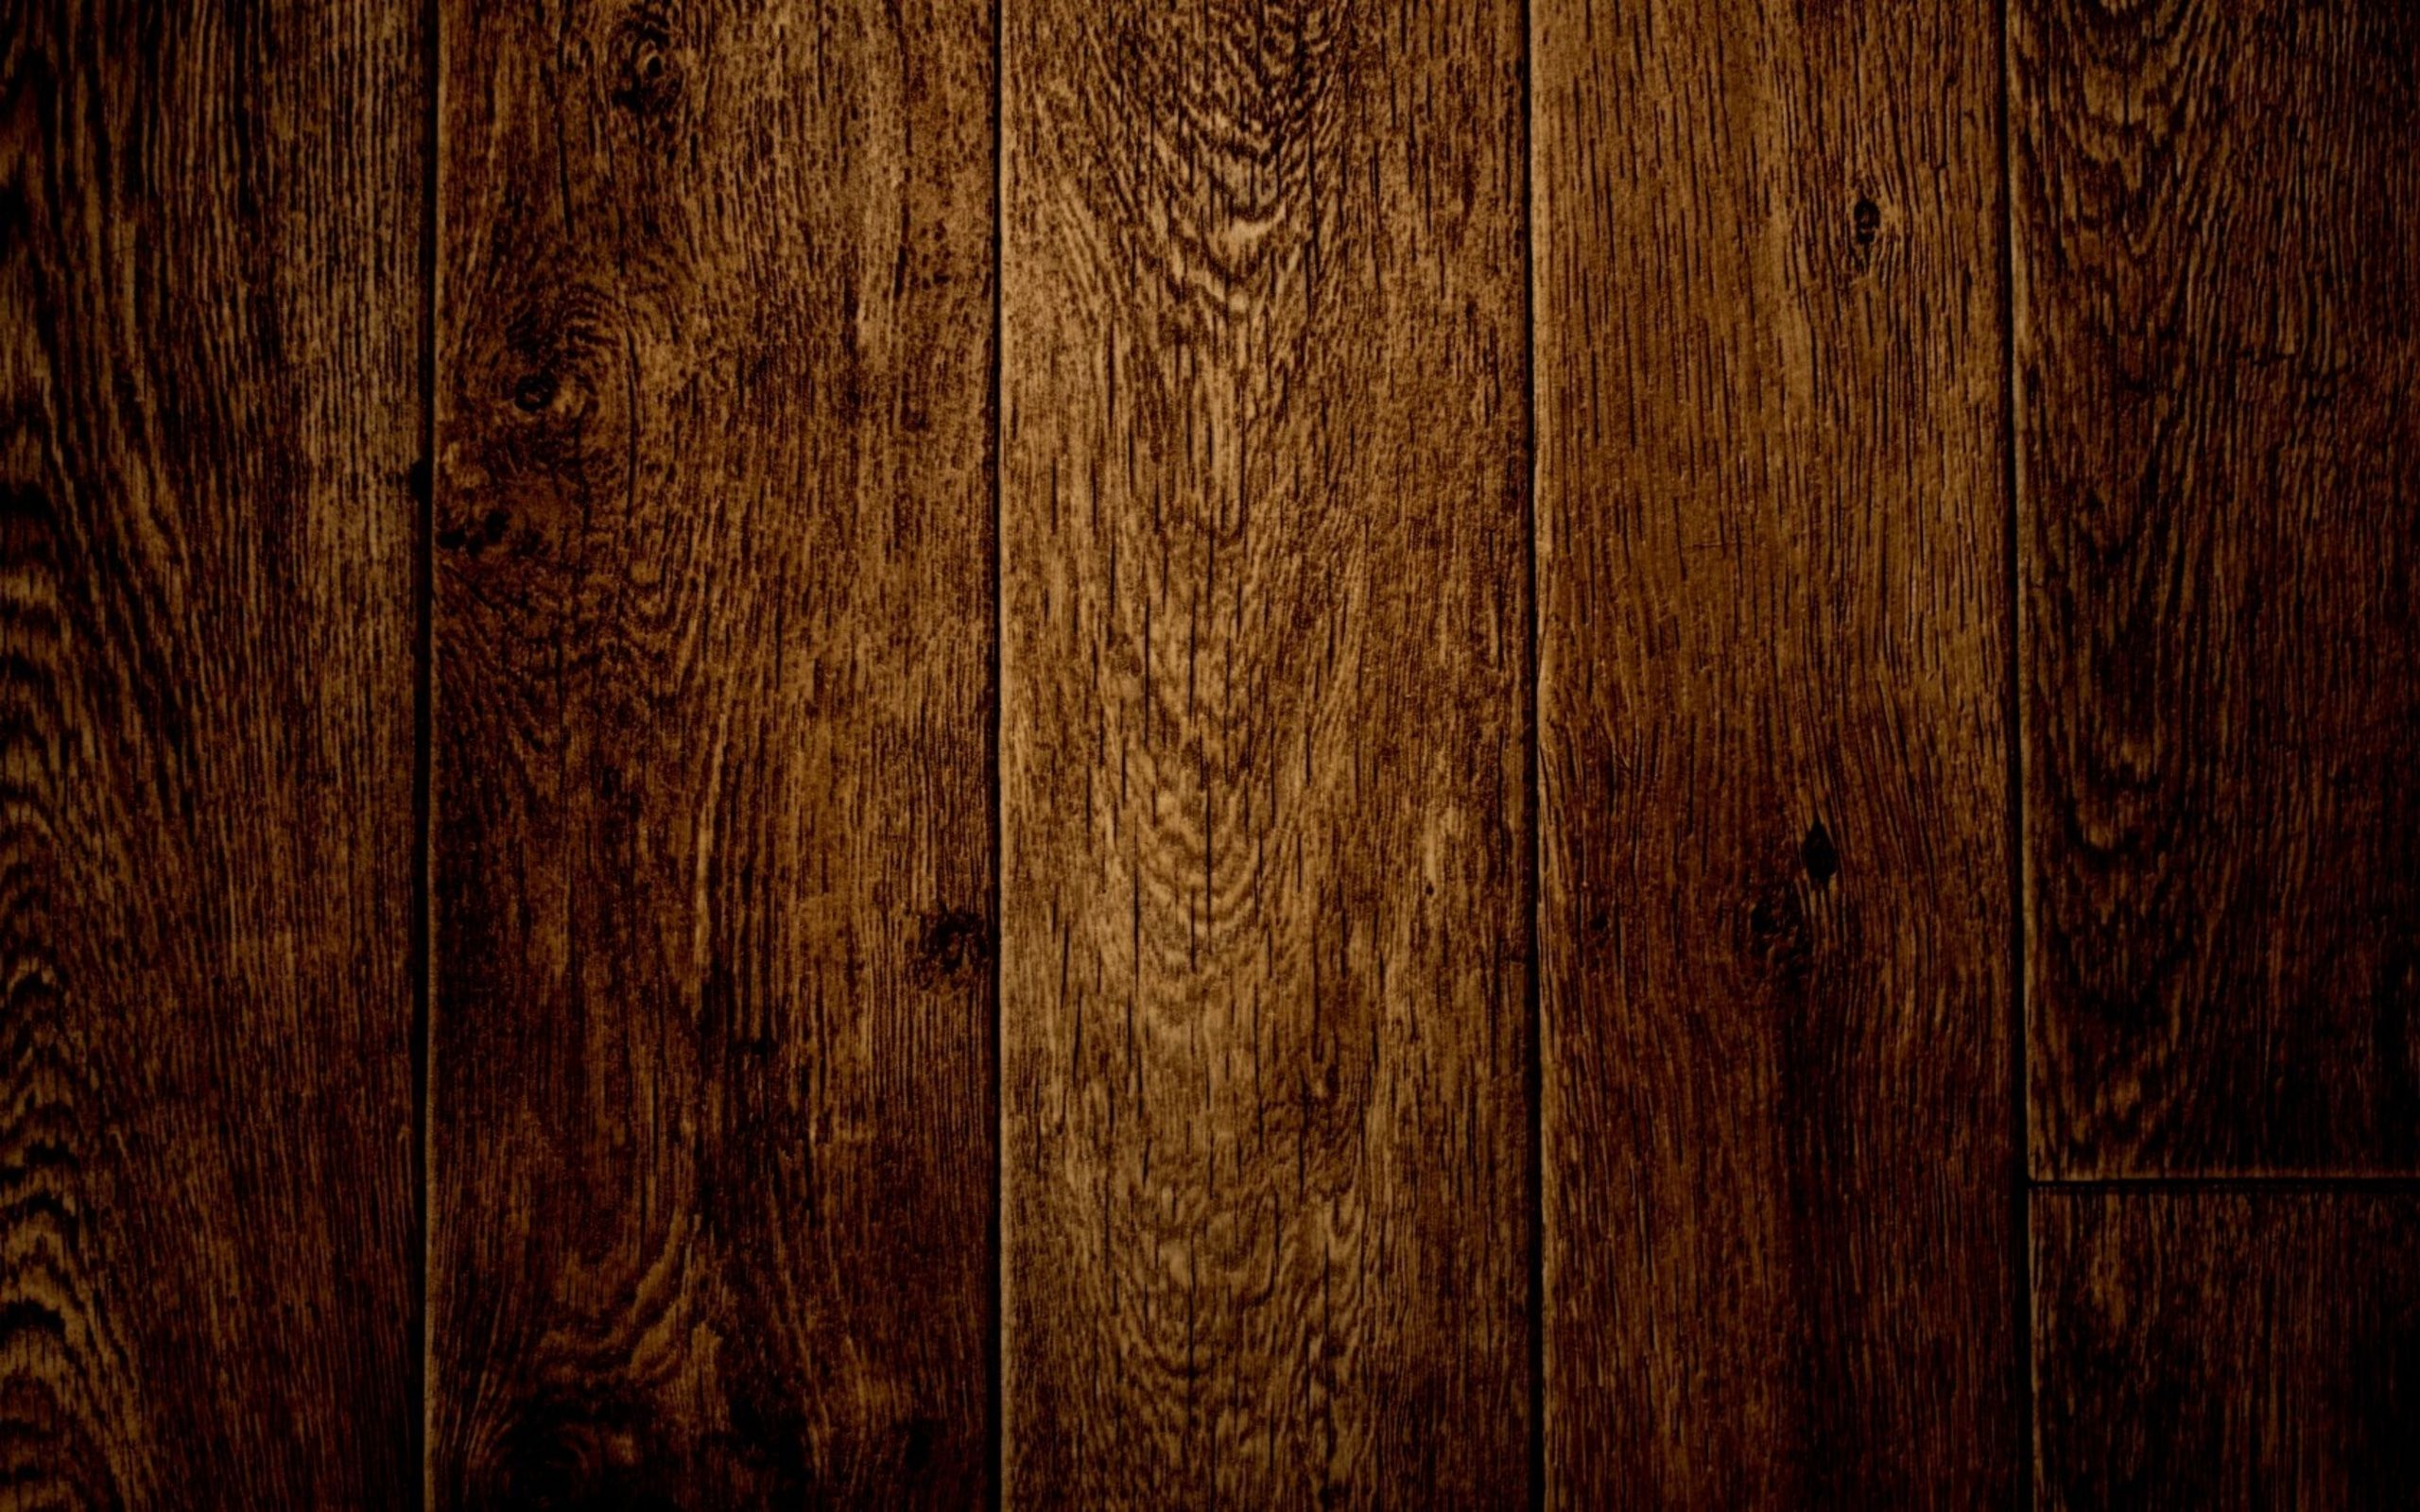 Brown Wood Wallpapers   Top Brown Wood Backgrounds 2560x1600